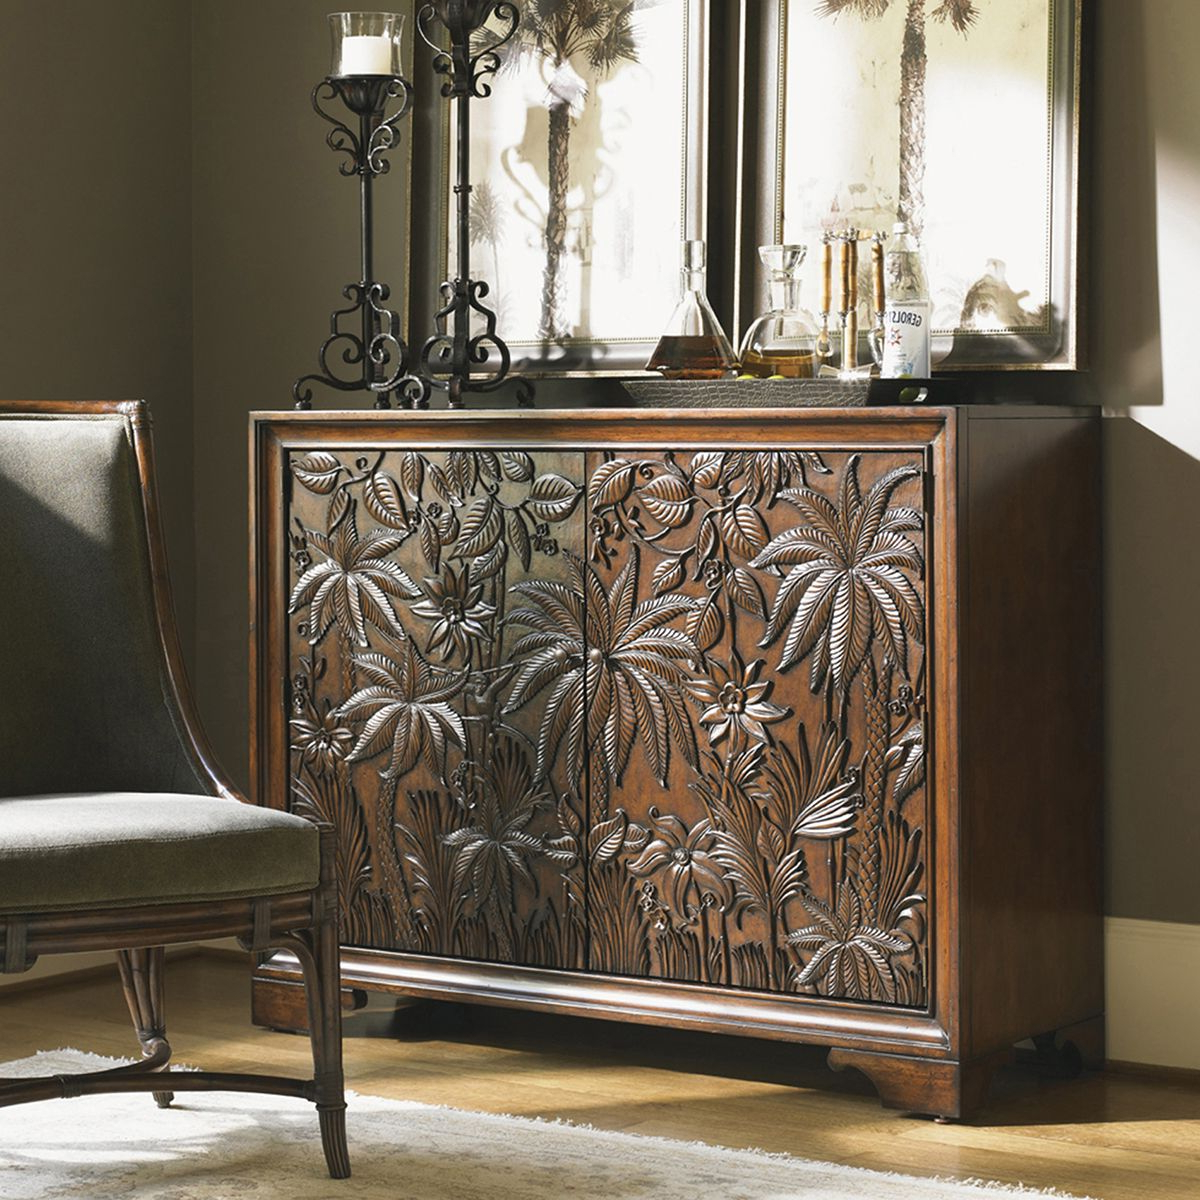 Lexington Landara Balboa Carved Door Chest 545 973 | Tommy Bamaha Pertaining To Balboa Carved Console Tables (View 5 of 20)